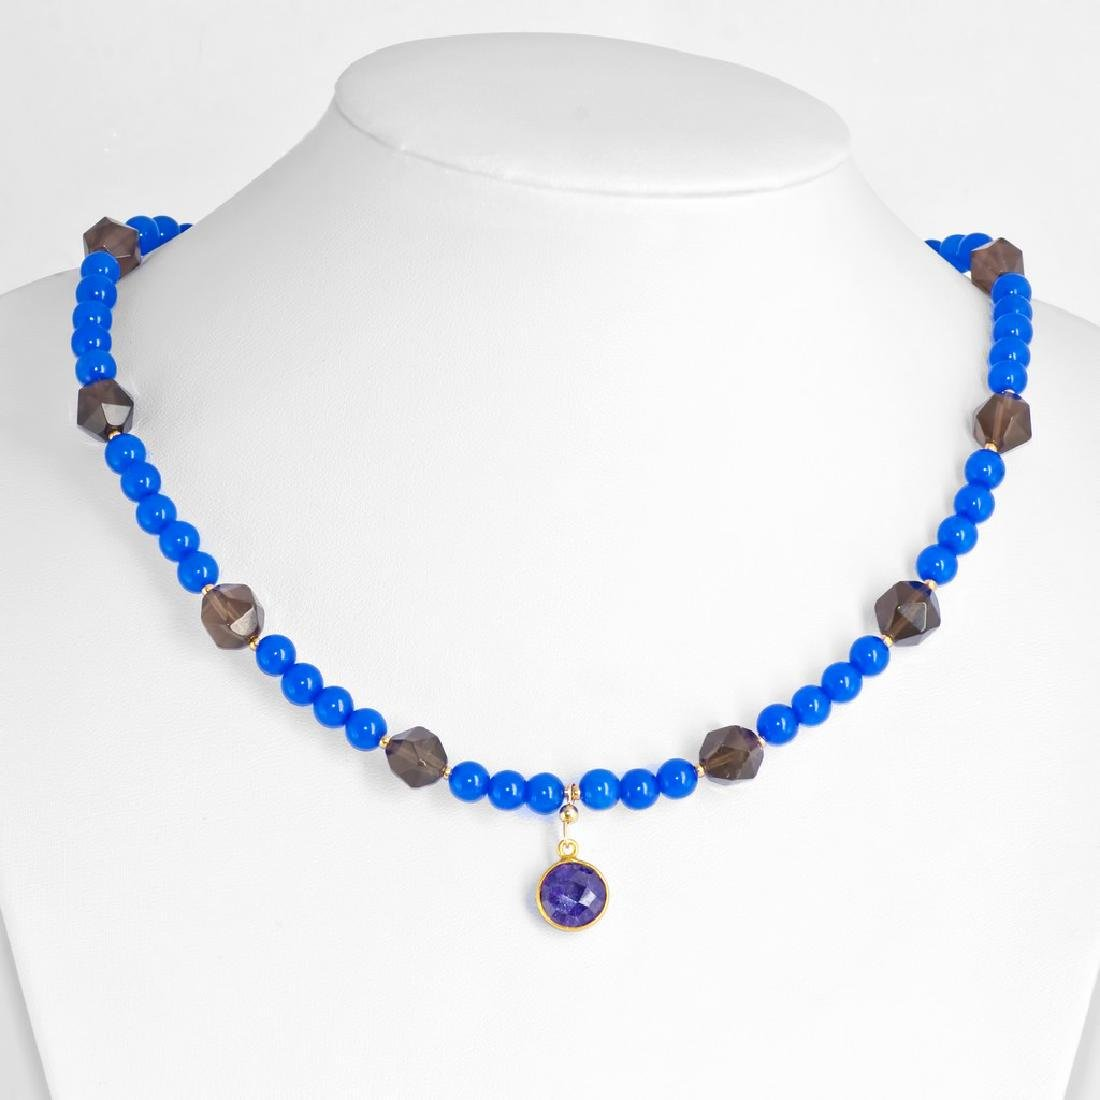 Blue Onyx and Smoky Quartz Necklace with Sapphire 5